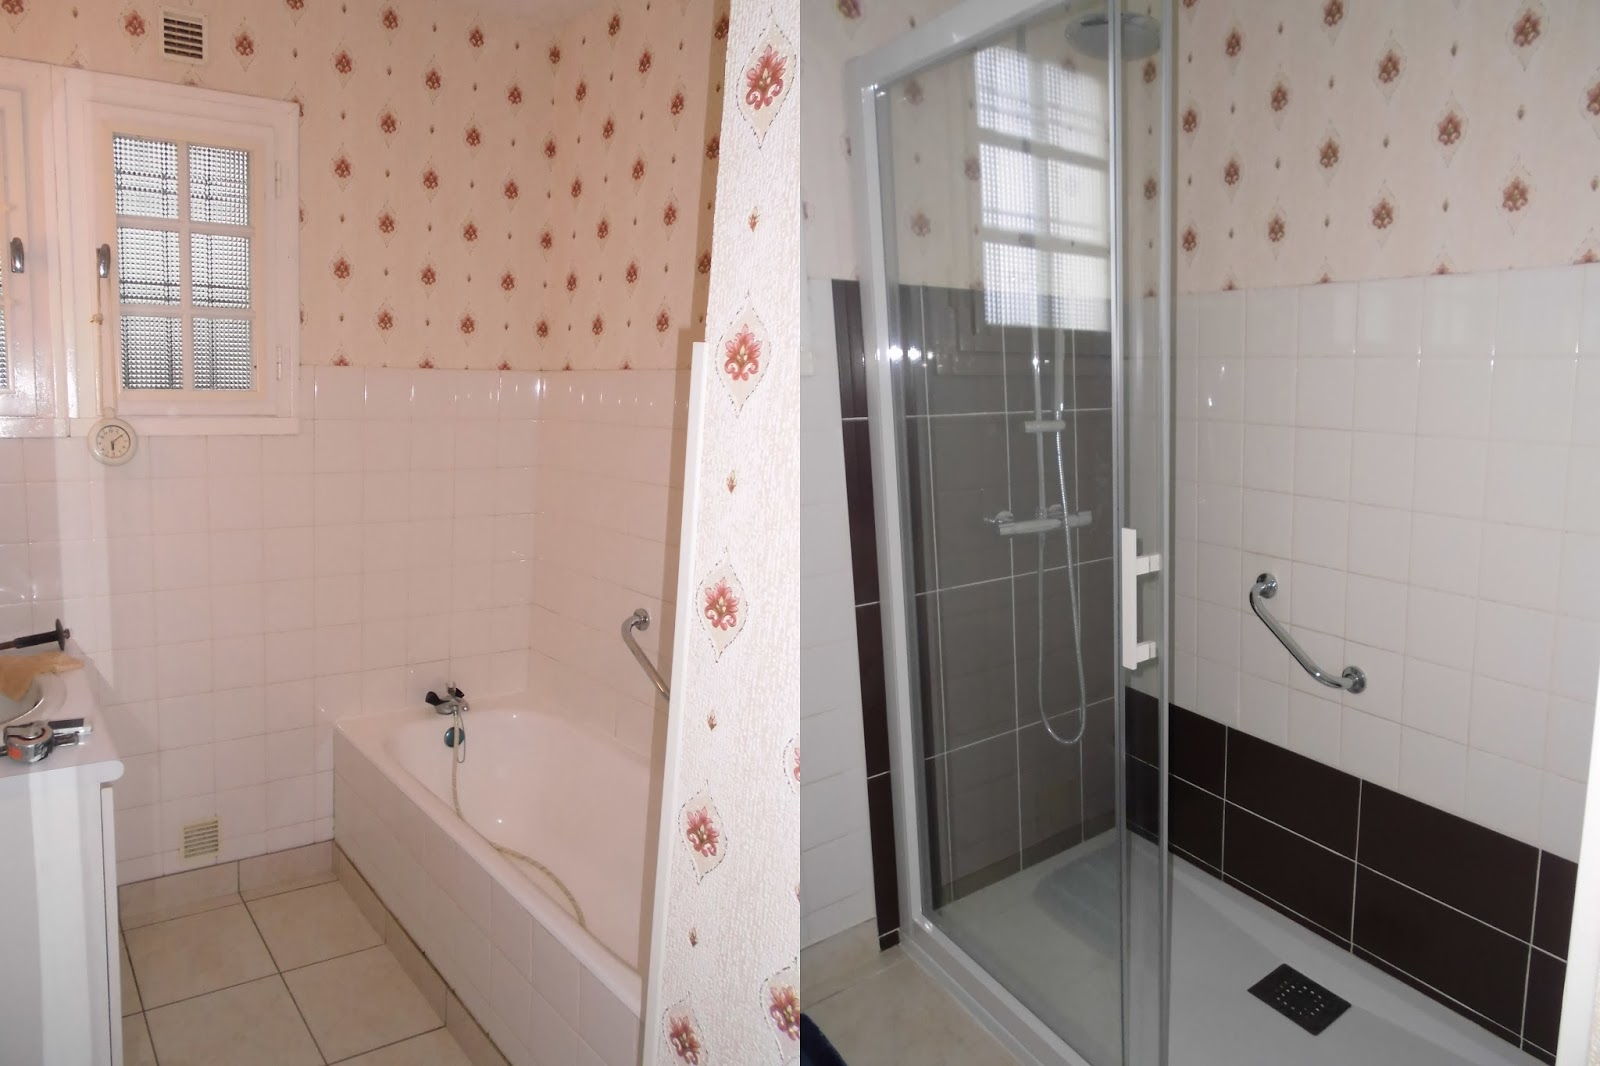 Michel le coz agencement d coration avant apr s salle for Salle de bain a renover